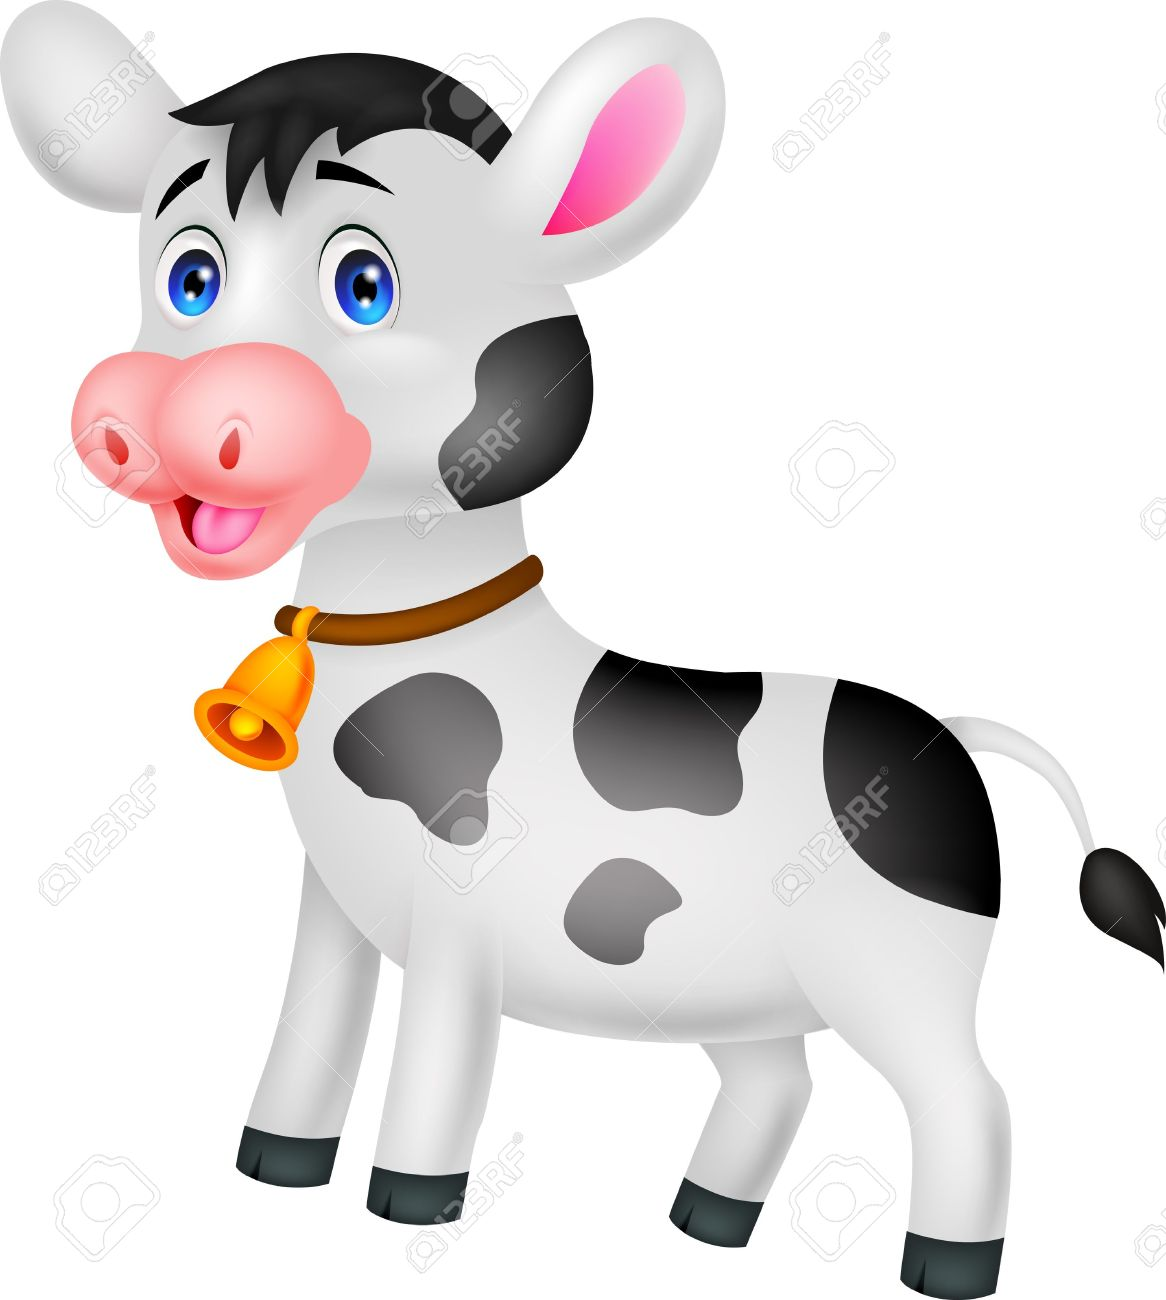 Cute Cow Cartoon Royalty Free Cliparts, Vectors, And Stock.